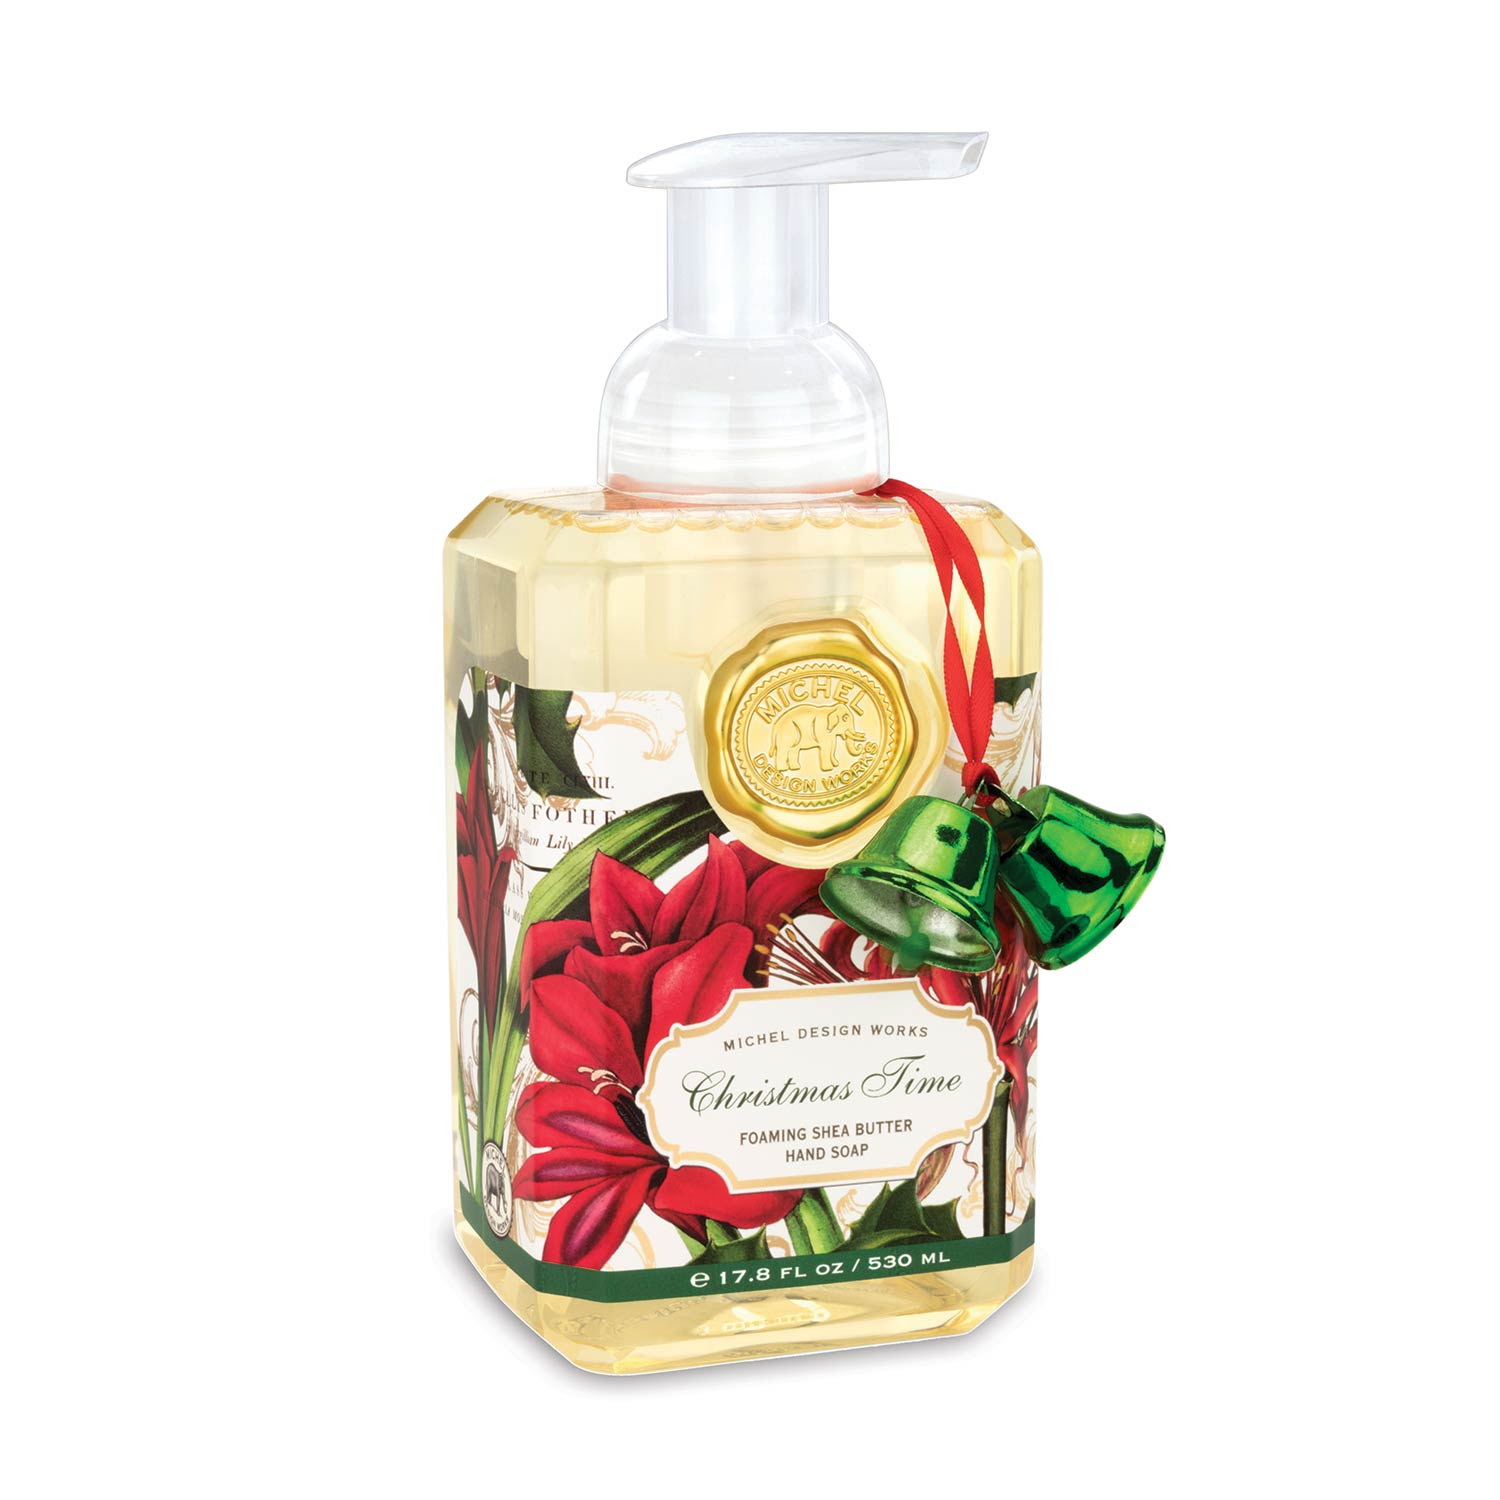 Foaming Hand Soap By Michel Design Works Christmas Time